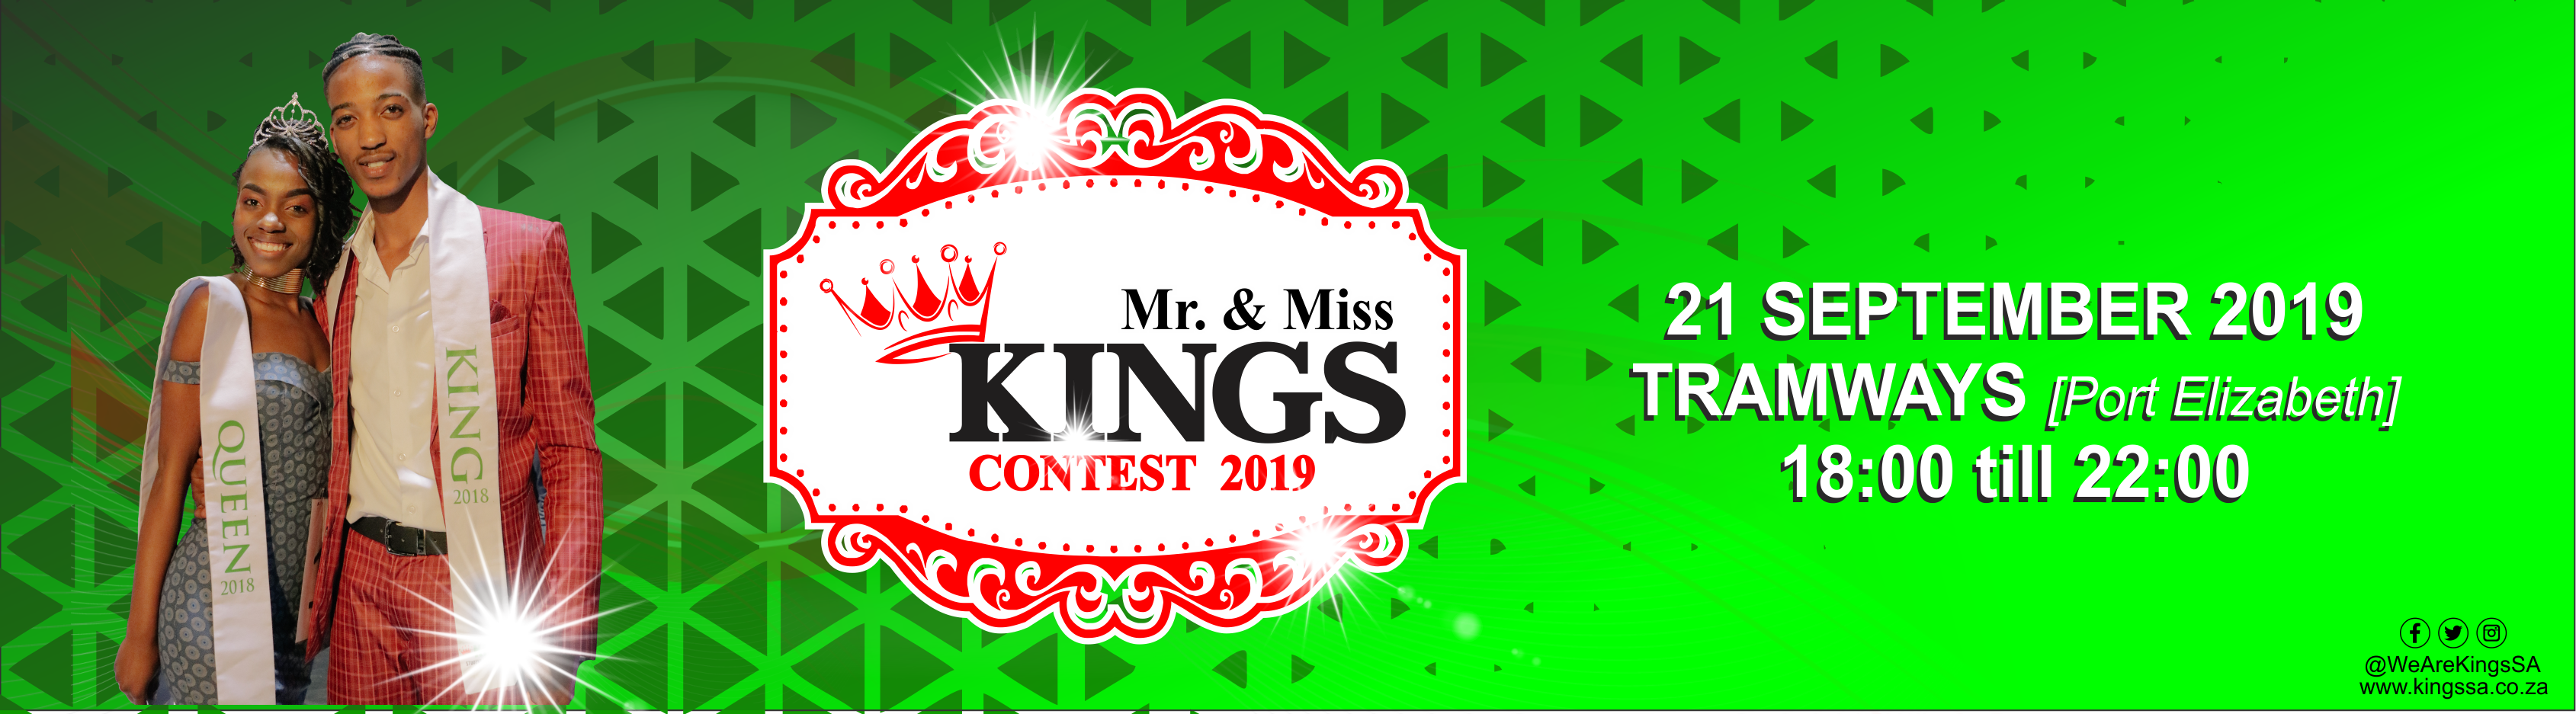 Kings sa   mr miss kings sa 2019  vote banner